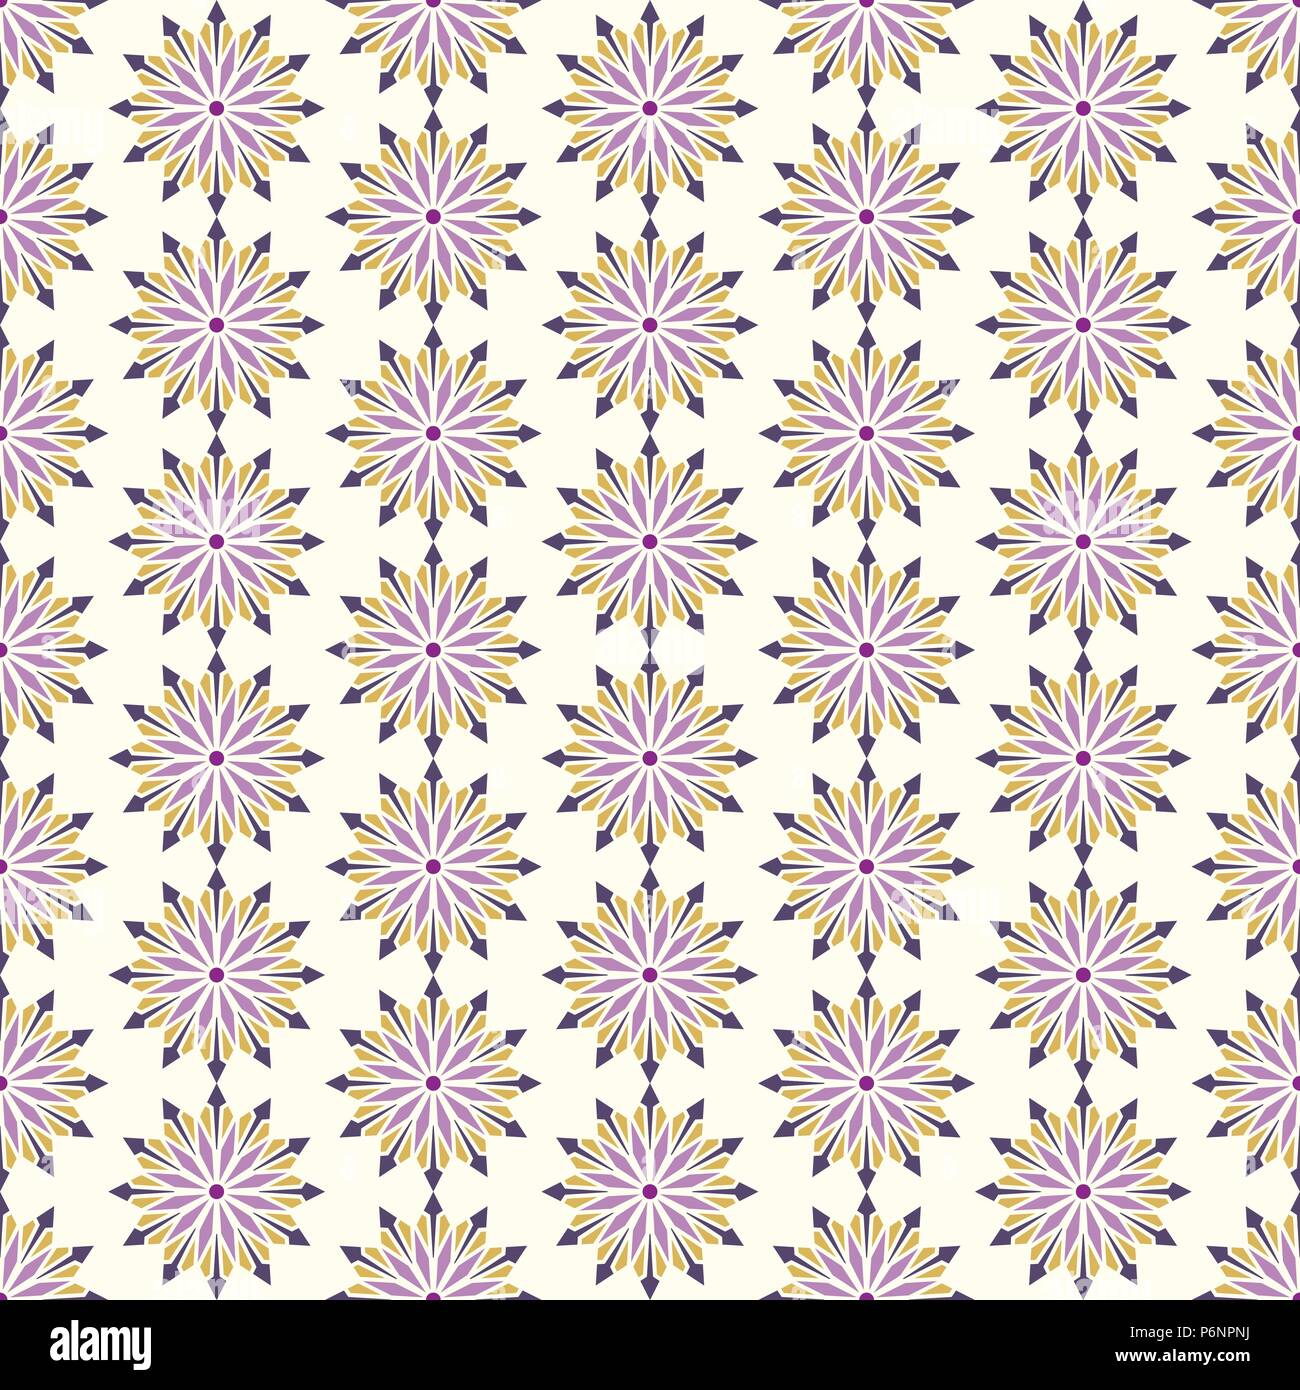 Purple modern flower and arrow and rhomboid shape seamless pattern. Graphic bloom pattern for fashionable or classic design - Stock Vector